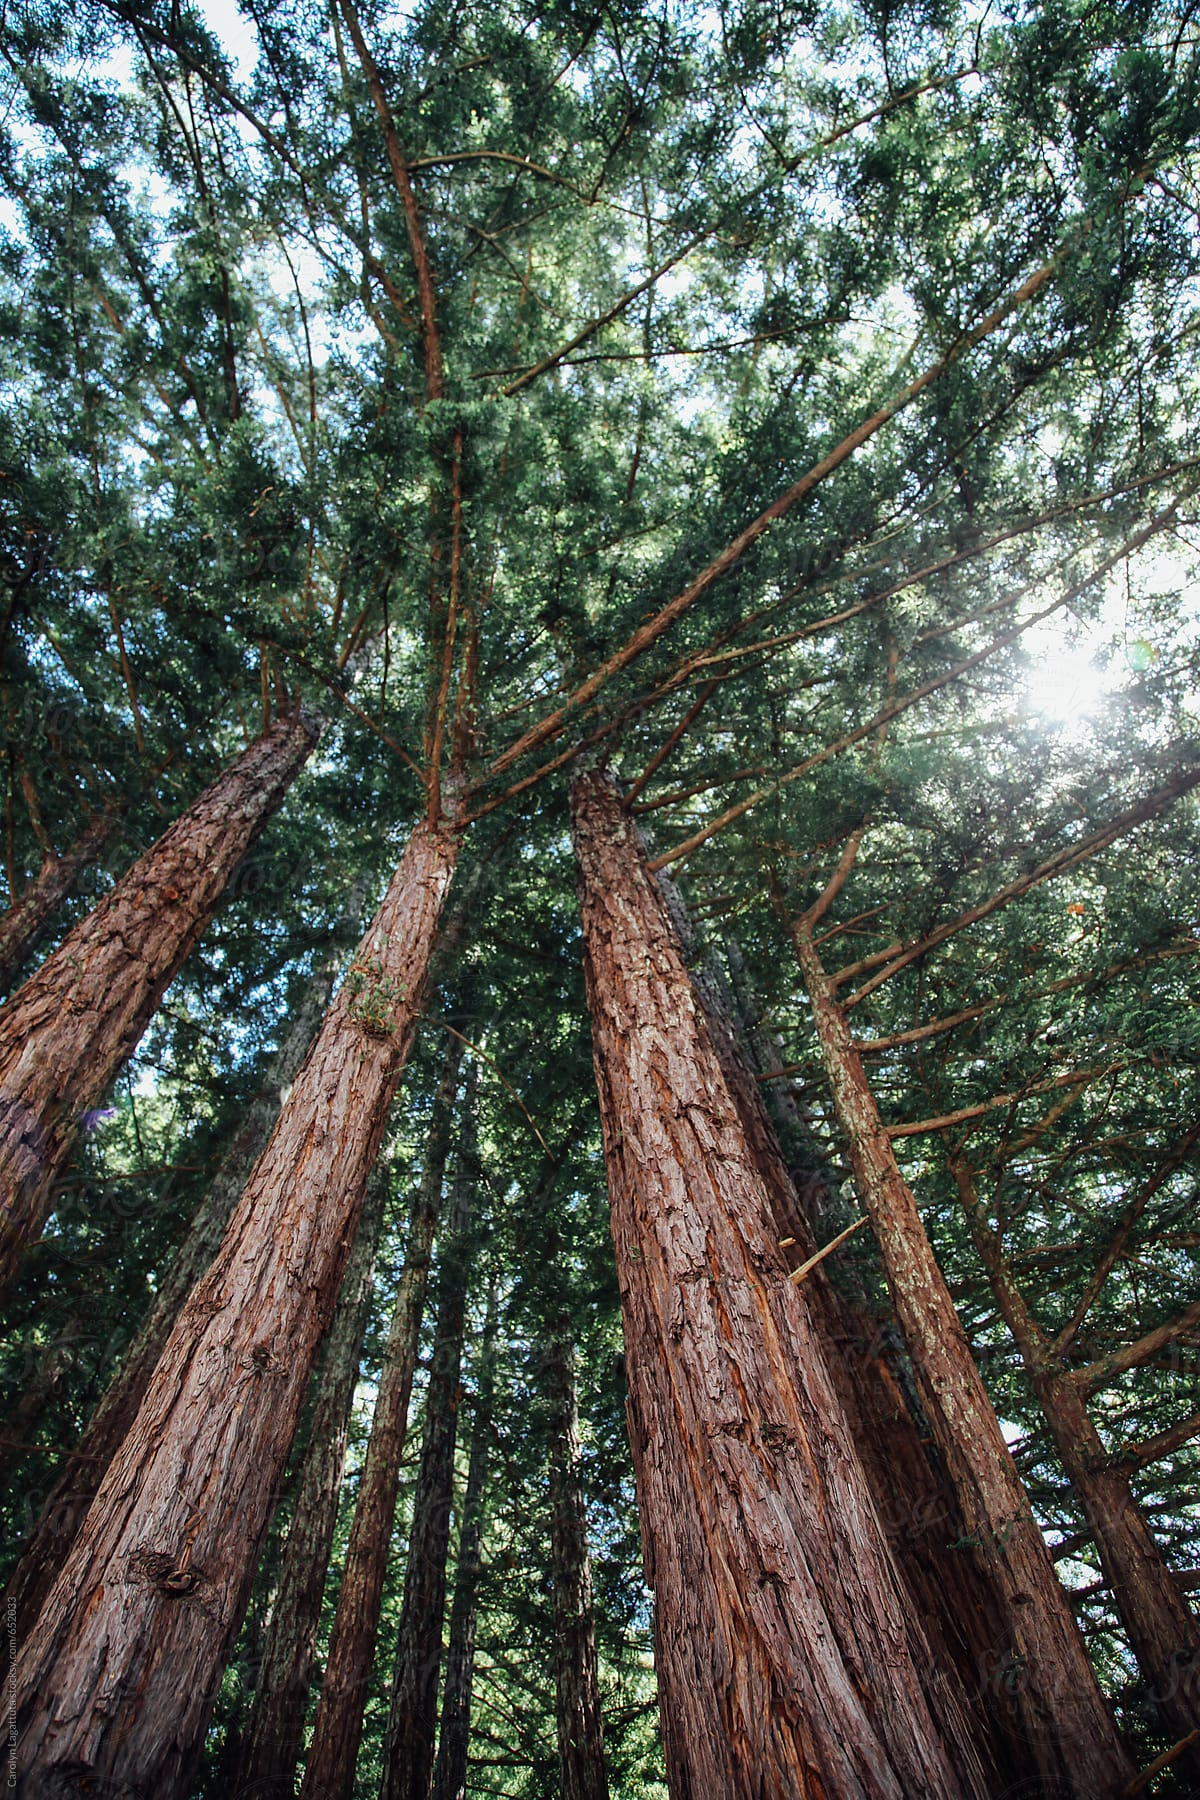 A walk in Hendy Woods - Enjoy a forest bath. 1,000 year old trees bathe you in the healing sights, sounds, and aroma of redwoods.⊙ Hendy Woods State Park